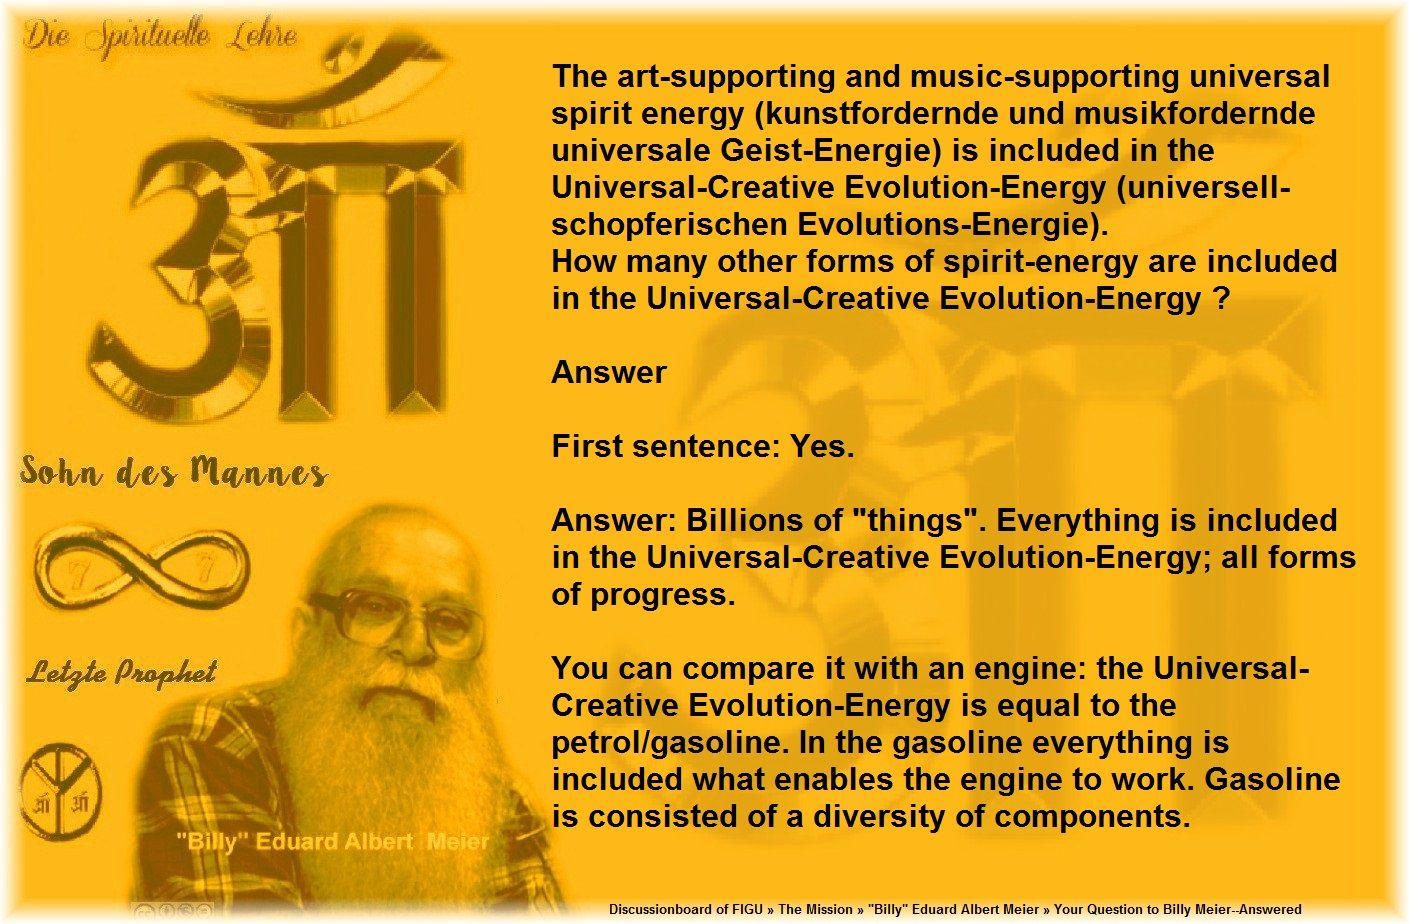 "First sentence: Yes.   Answer: Billions of ""things"". Everything is included in the Universal-Creative Evolution-Energy; all forms of progress.   You can compare it with an engine: the Universal-Creative Evolution-Energy is equal to the petrol/gasoline. In the gasoline everything is included what enables the engine to work. Gasoline is consisted of a diversity of components."